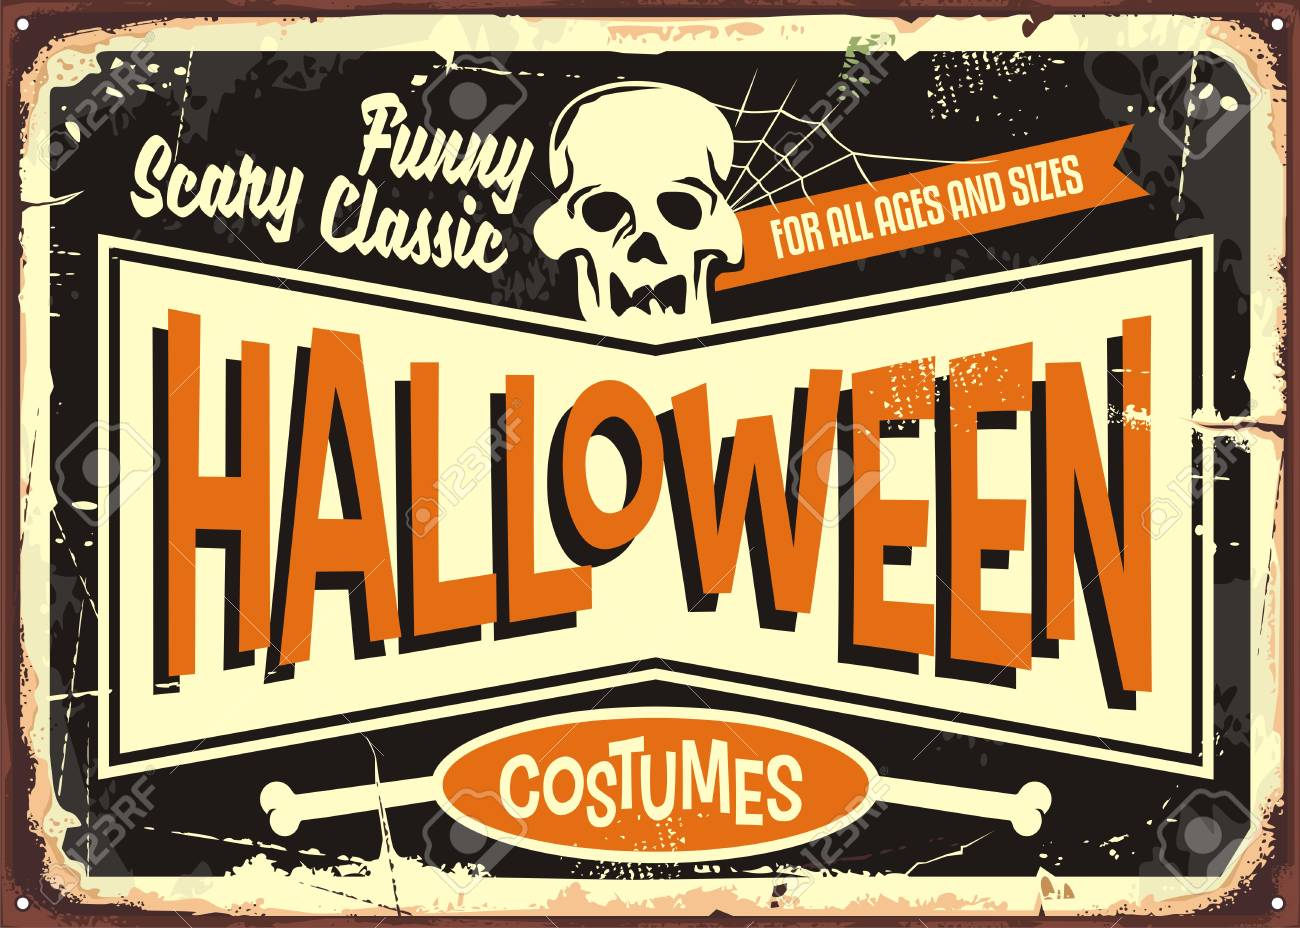 Halloween costumes retro shop sign board. Vintage Halloween poster..